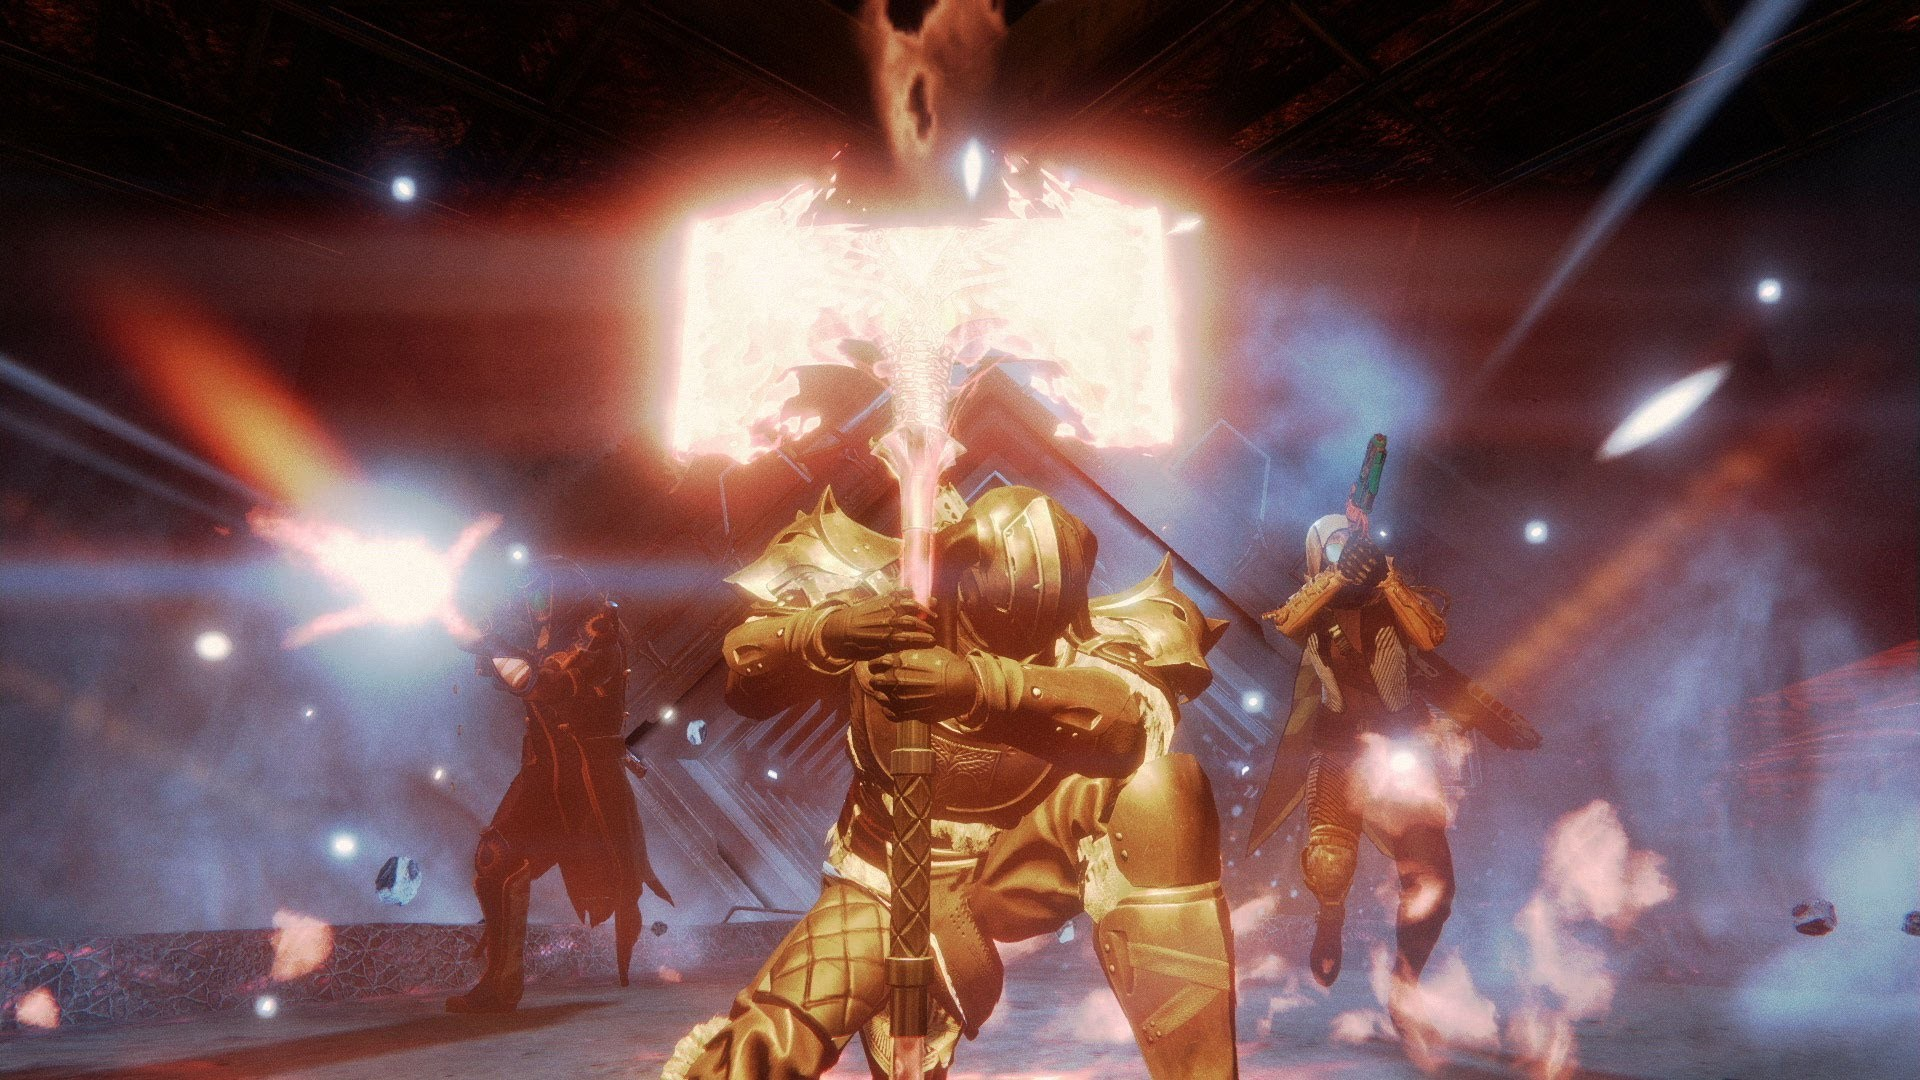 1920x1080 'Destiny' fans find more unannounced changes and new drops for Rise of Iron  | International Business Times AU